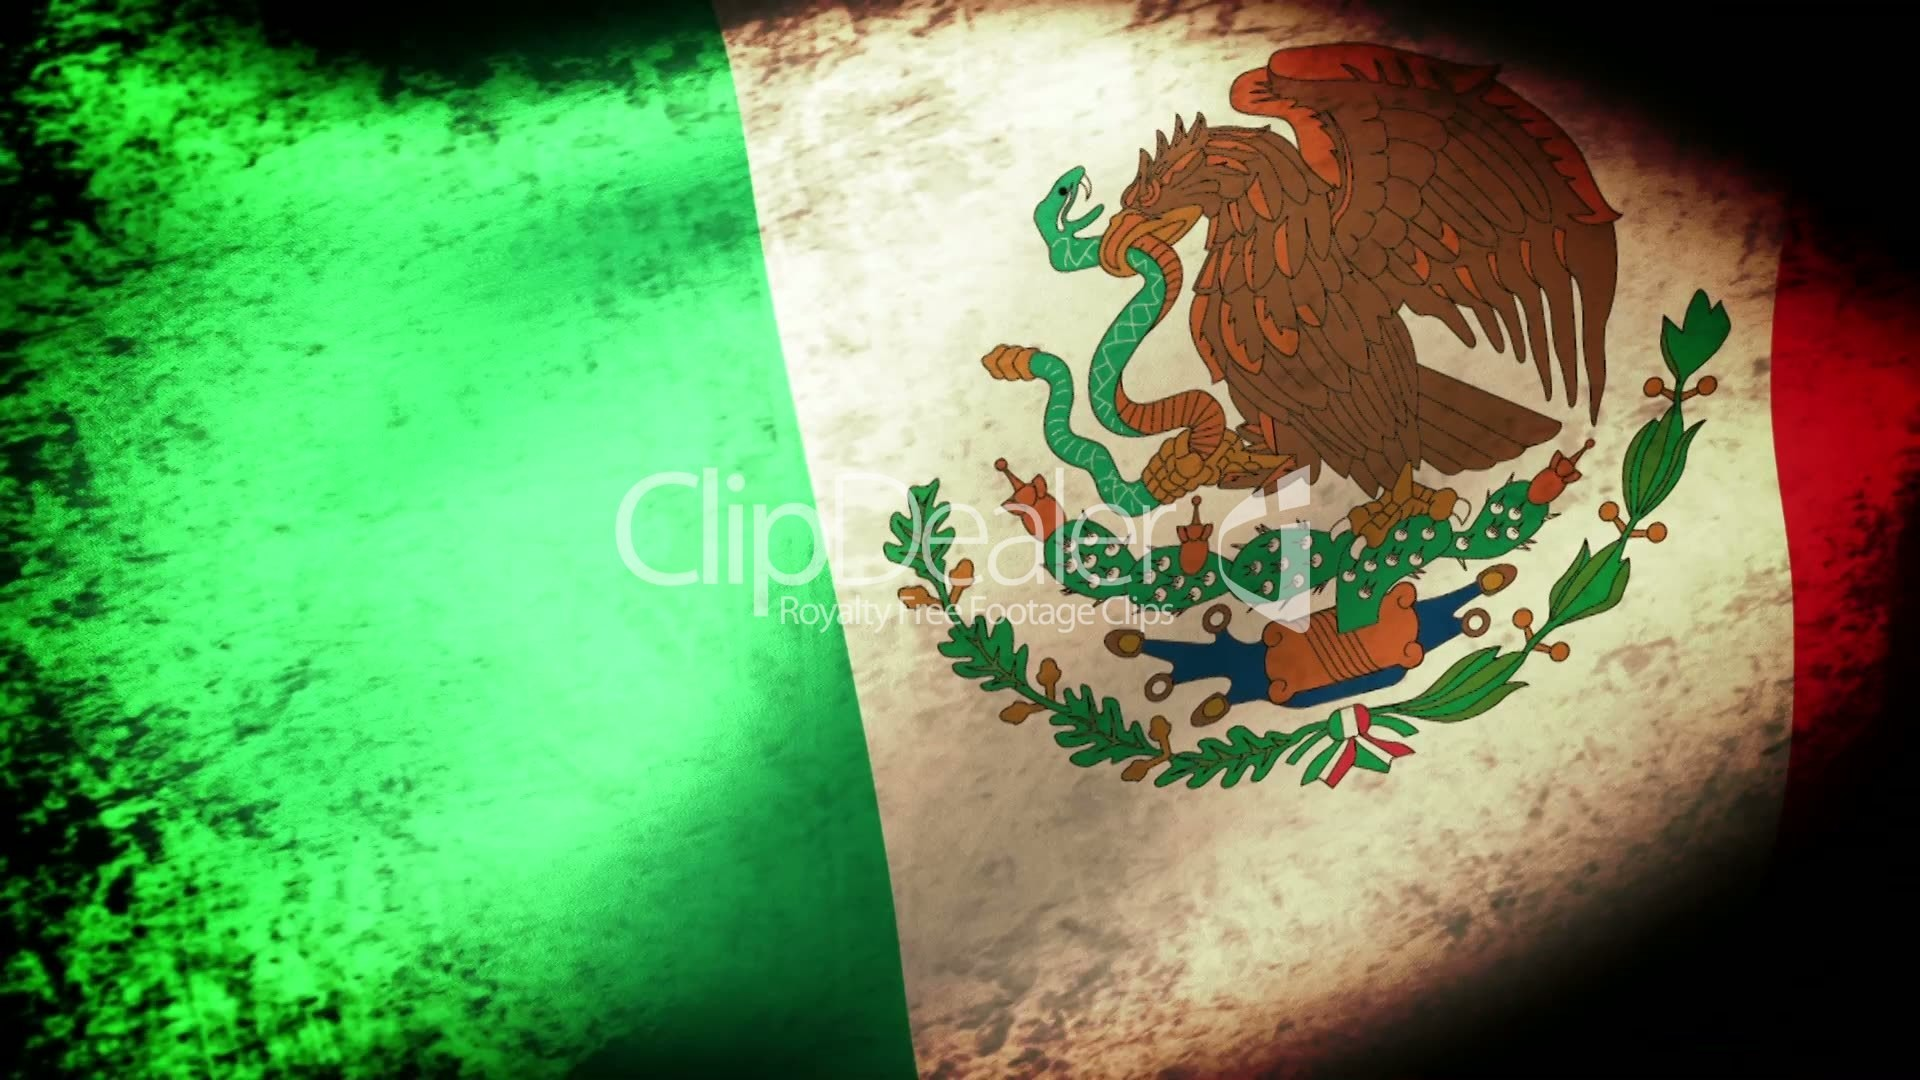 1920x1080 ... Nice Mexican Flag Wallpaper Free Wallpaper For Desktop and Mobile in  All Resolutions Free Download Hd